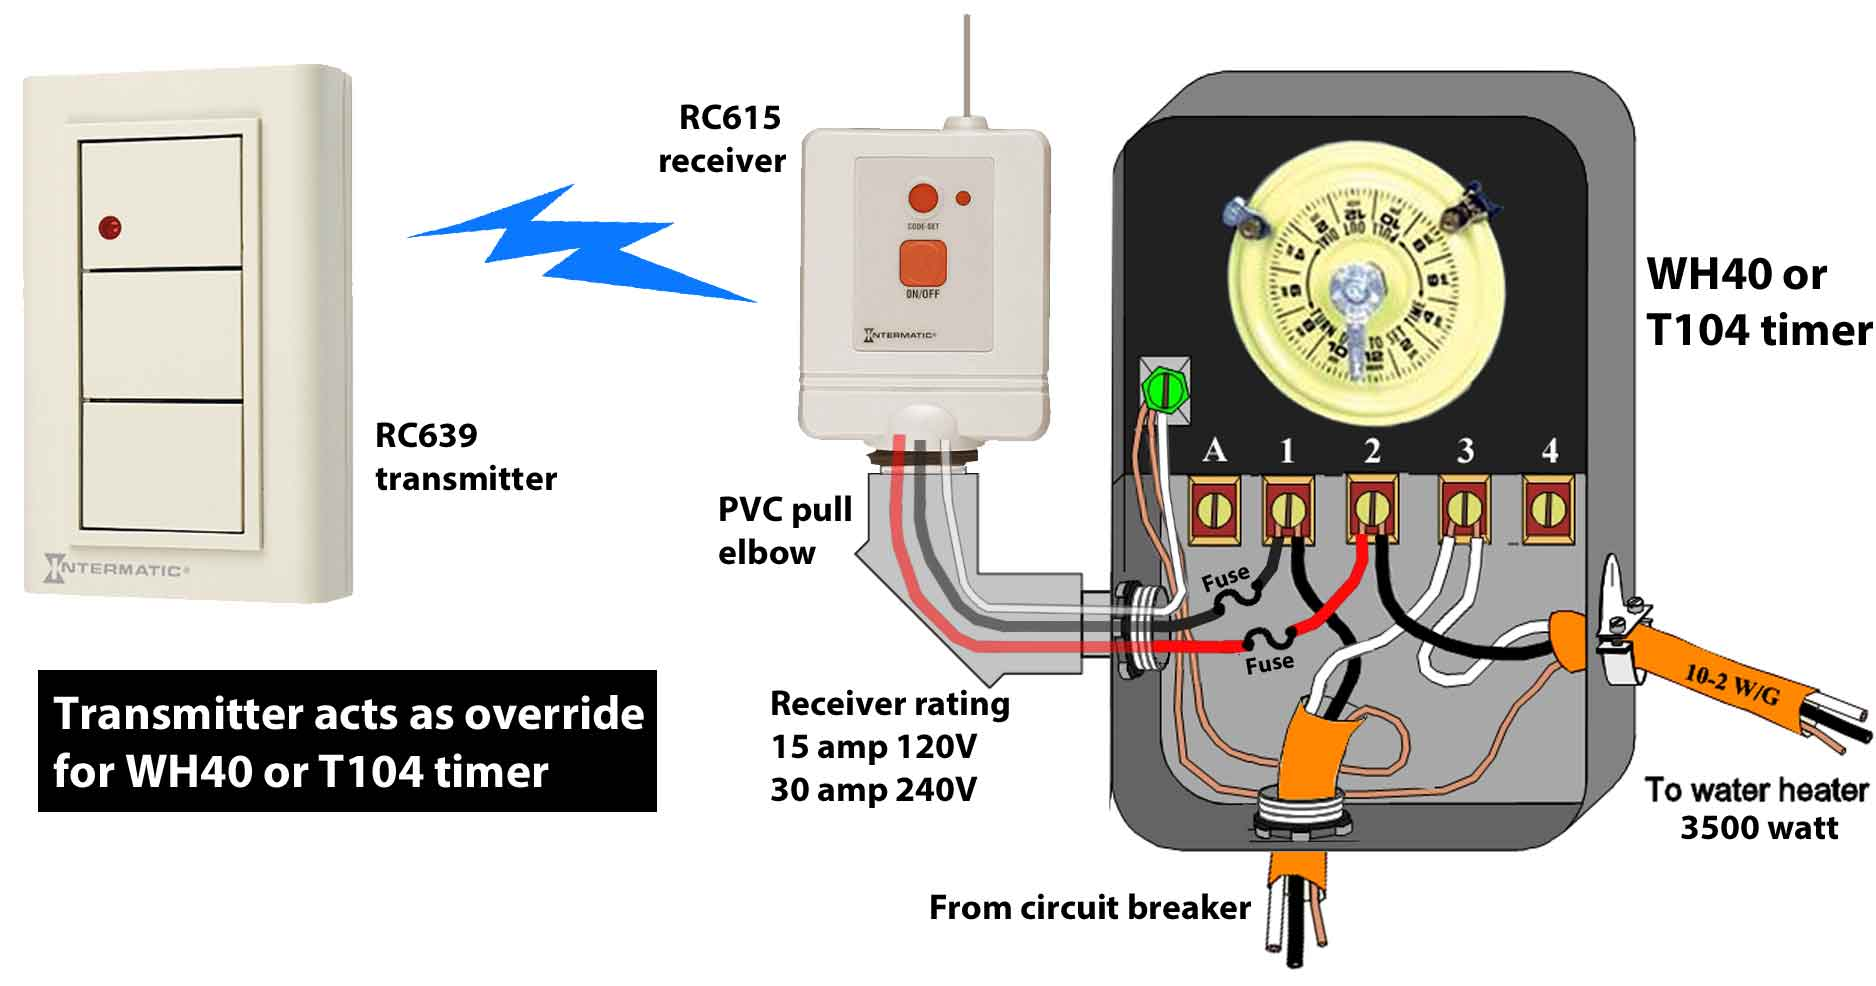 Intermatic remote RC control how to wire wh40 water heater timer intermatic wiring diagram at edmiracle.co